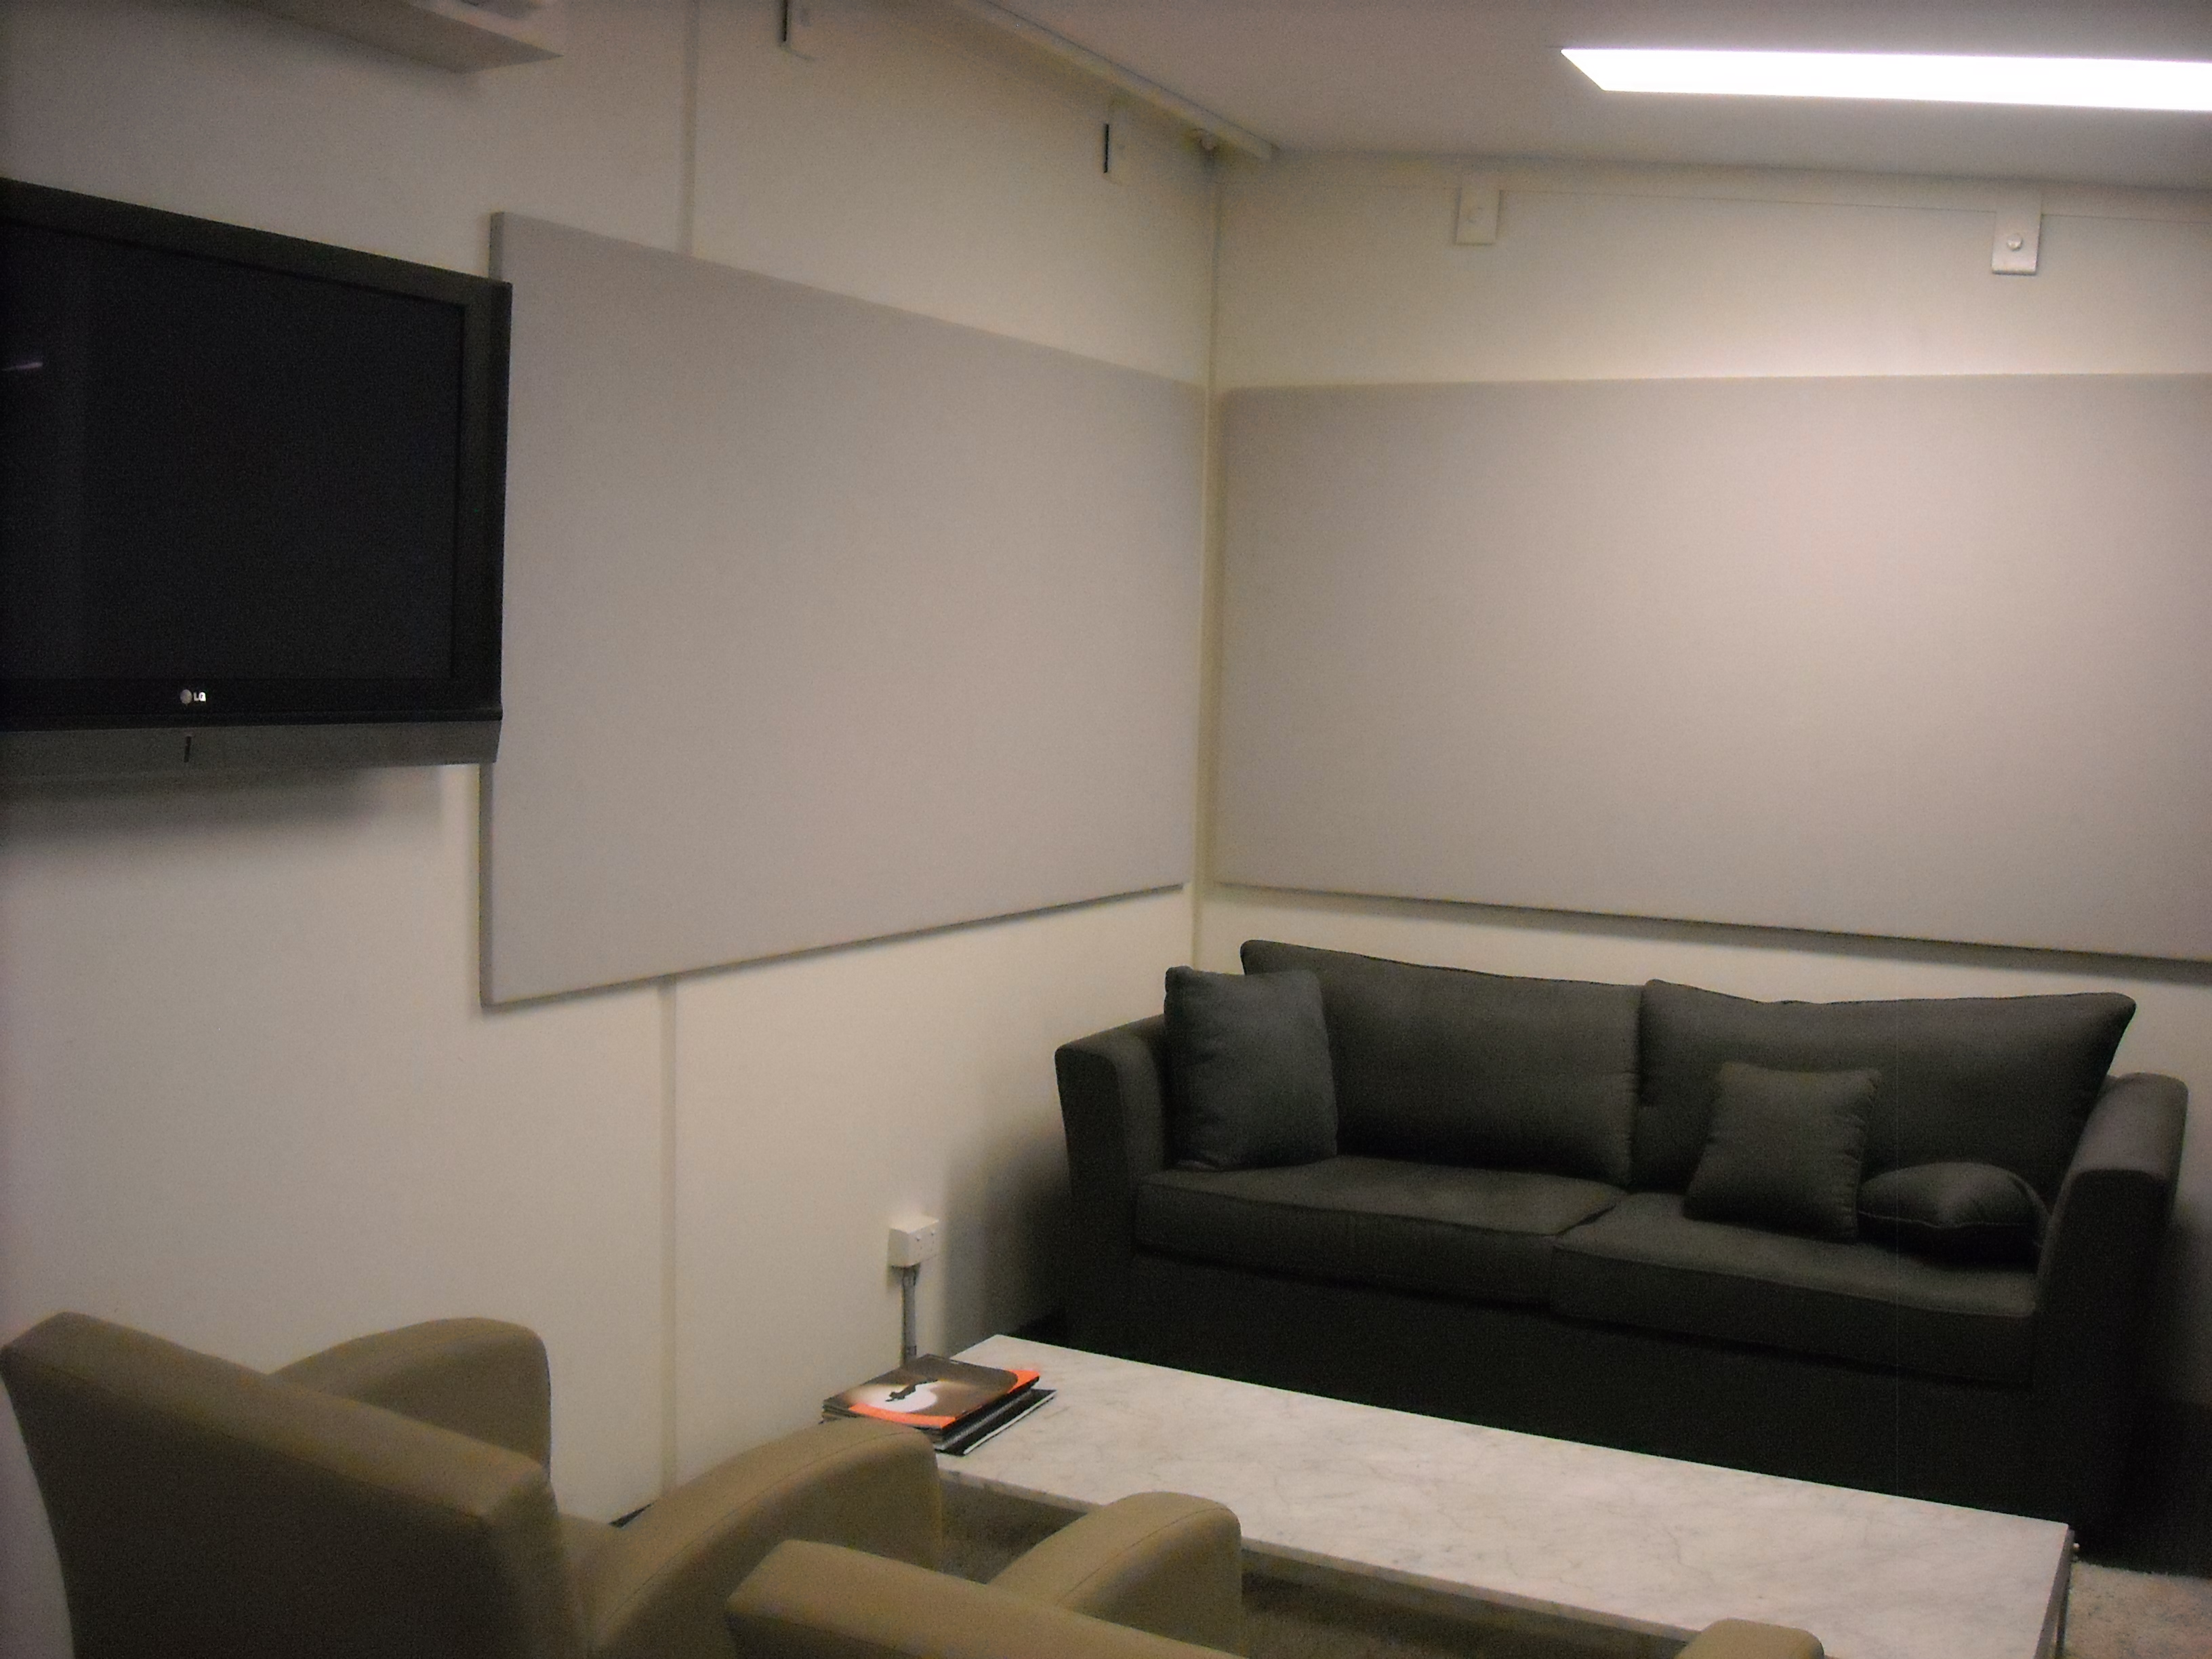 SerenityLite Fabric Acoustic Wall Panel